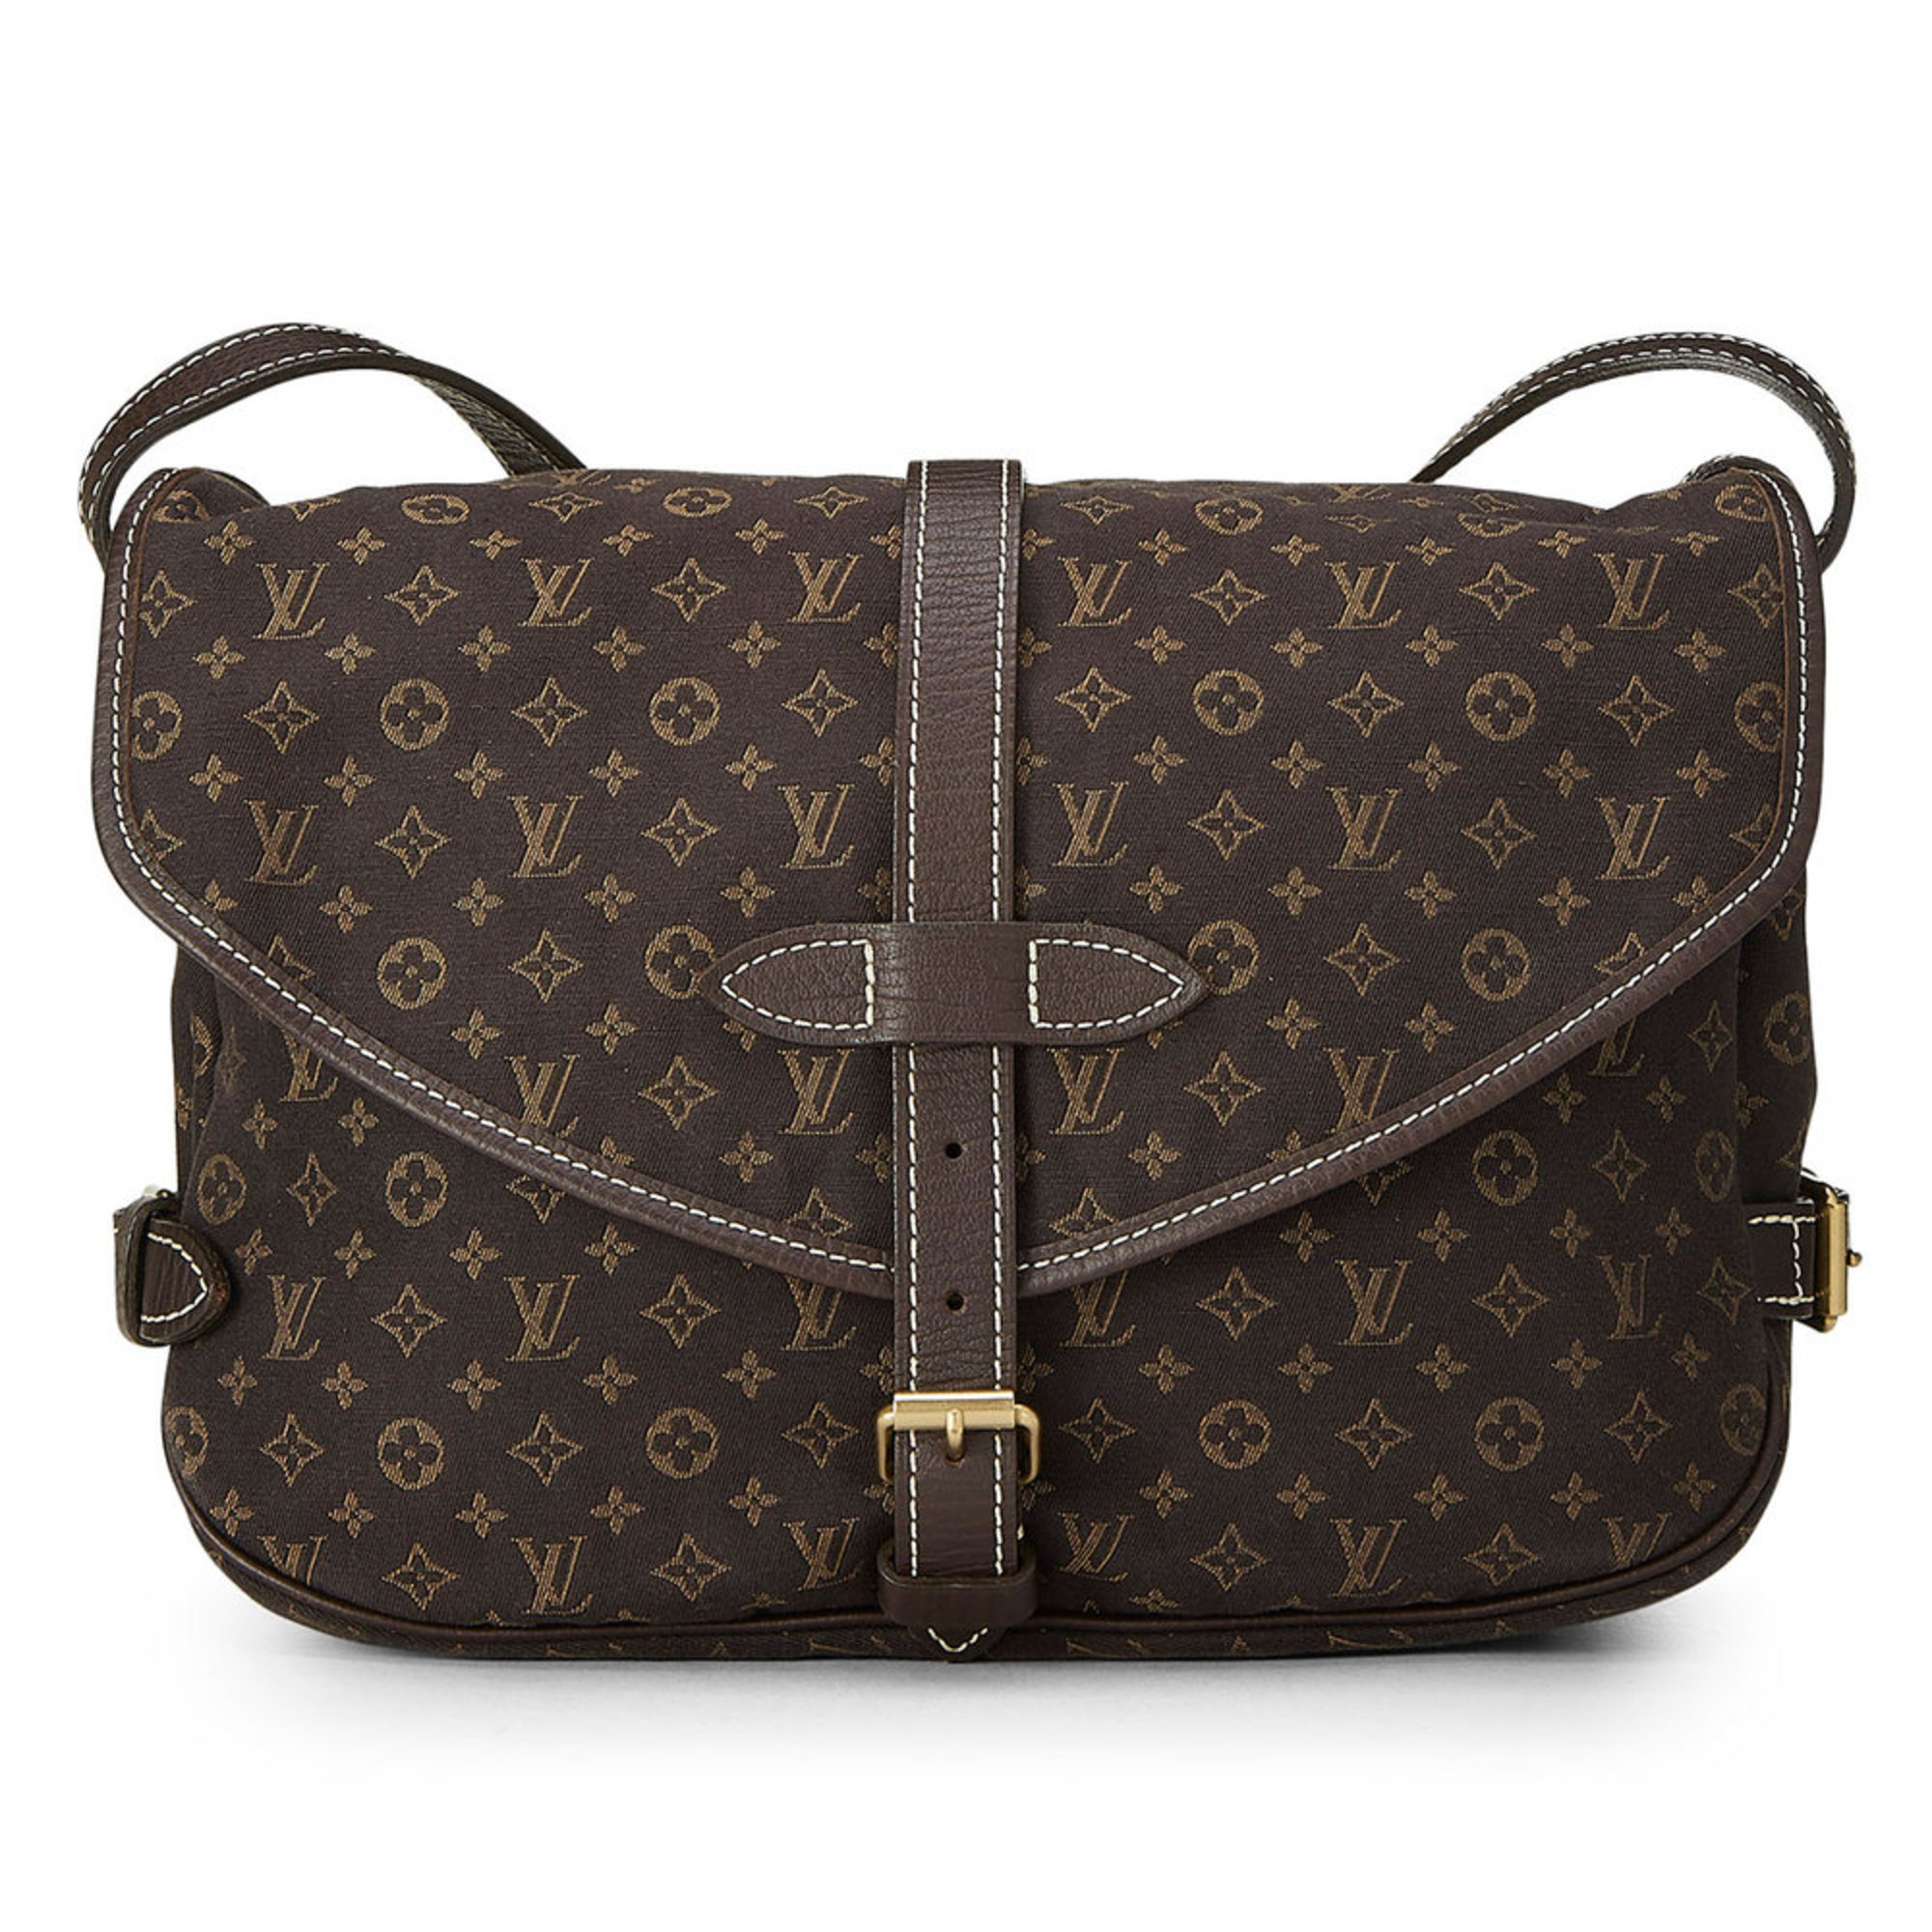 50d6e4ade665 Louis Vuitton Mini Lin Saumur Pm Brown